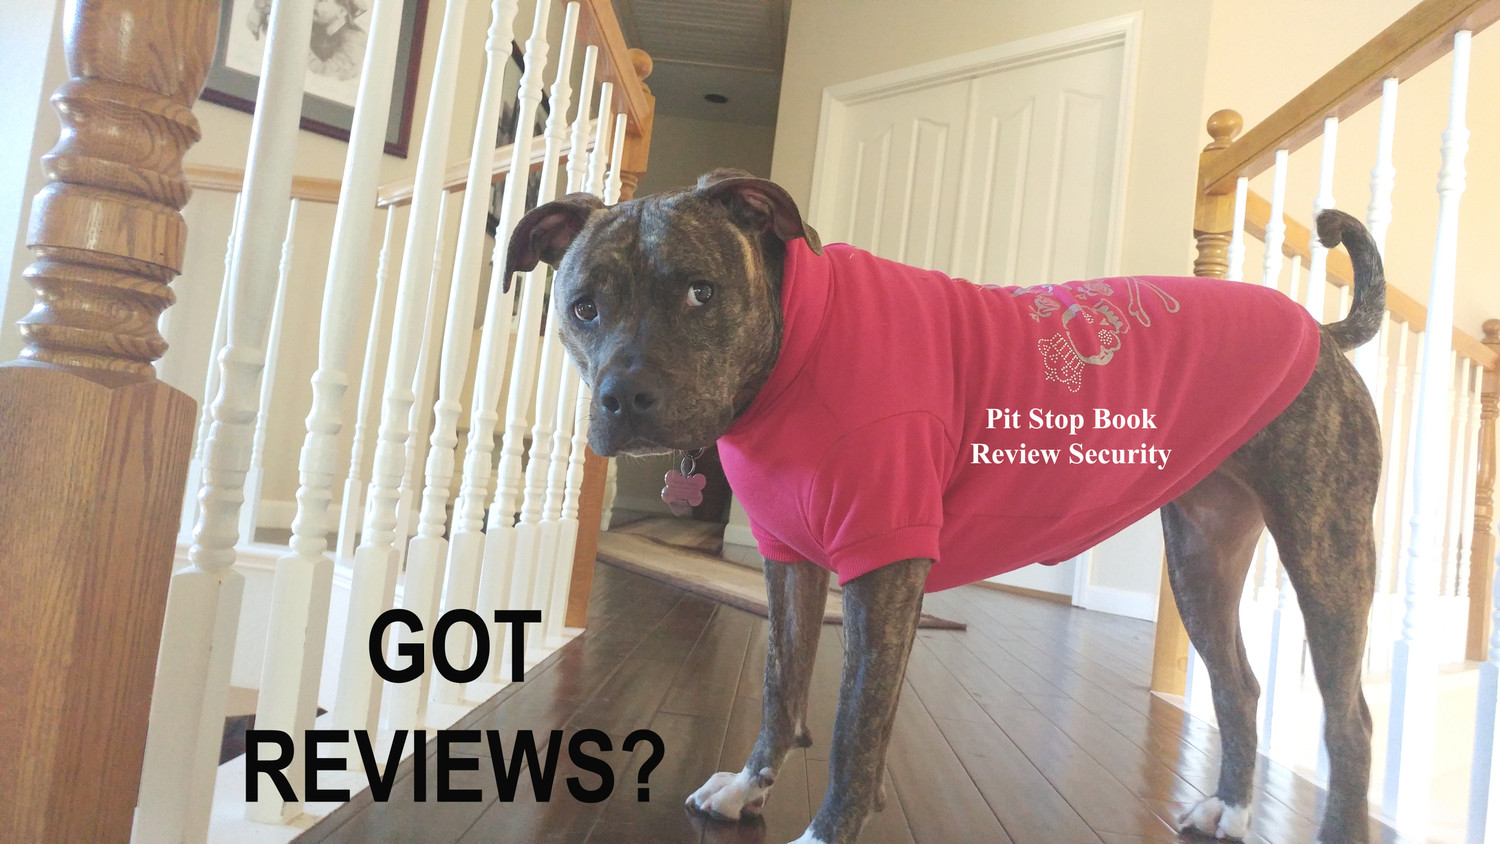 GOT REVIEWS? Why they Matter!